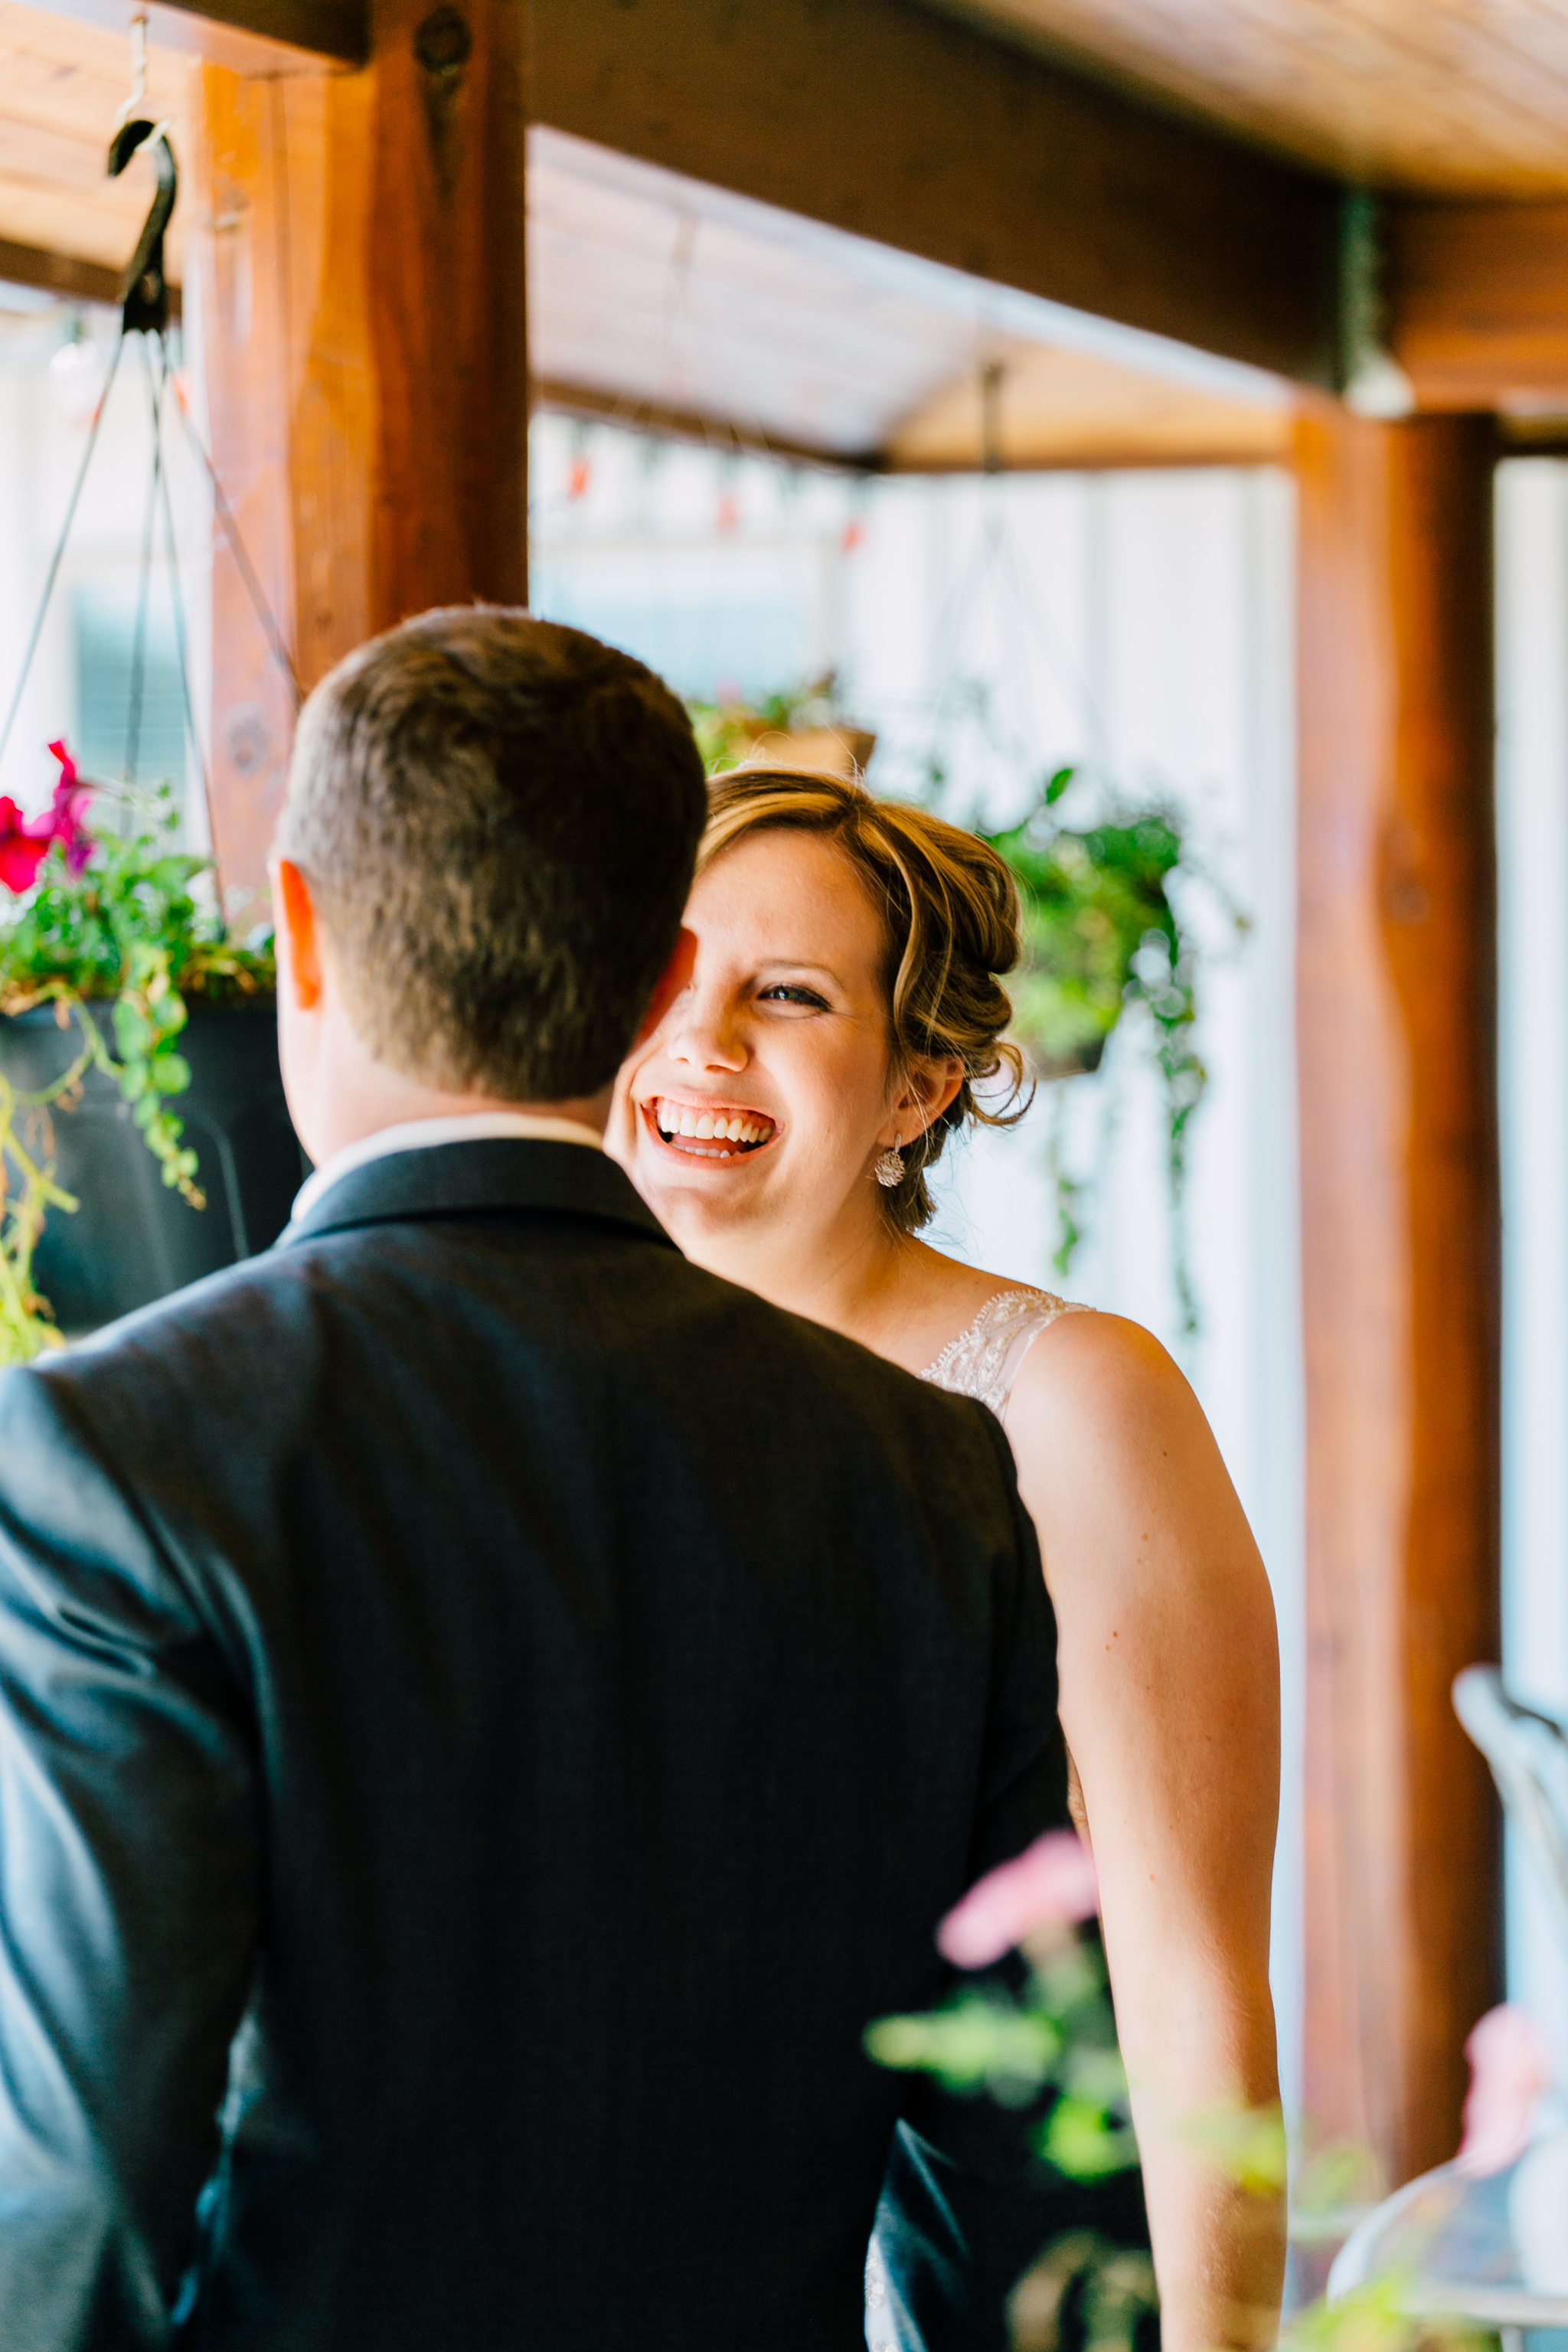 015-bellingham-wedding-photographer-samson-winery-katheryn-moran.jpg